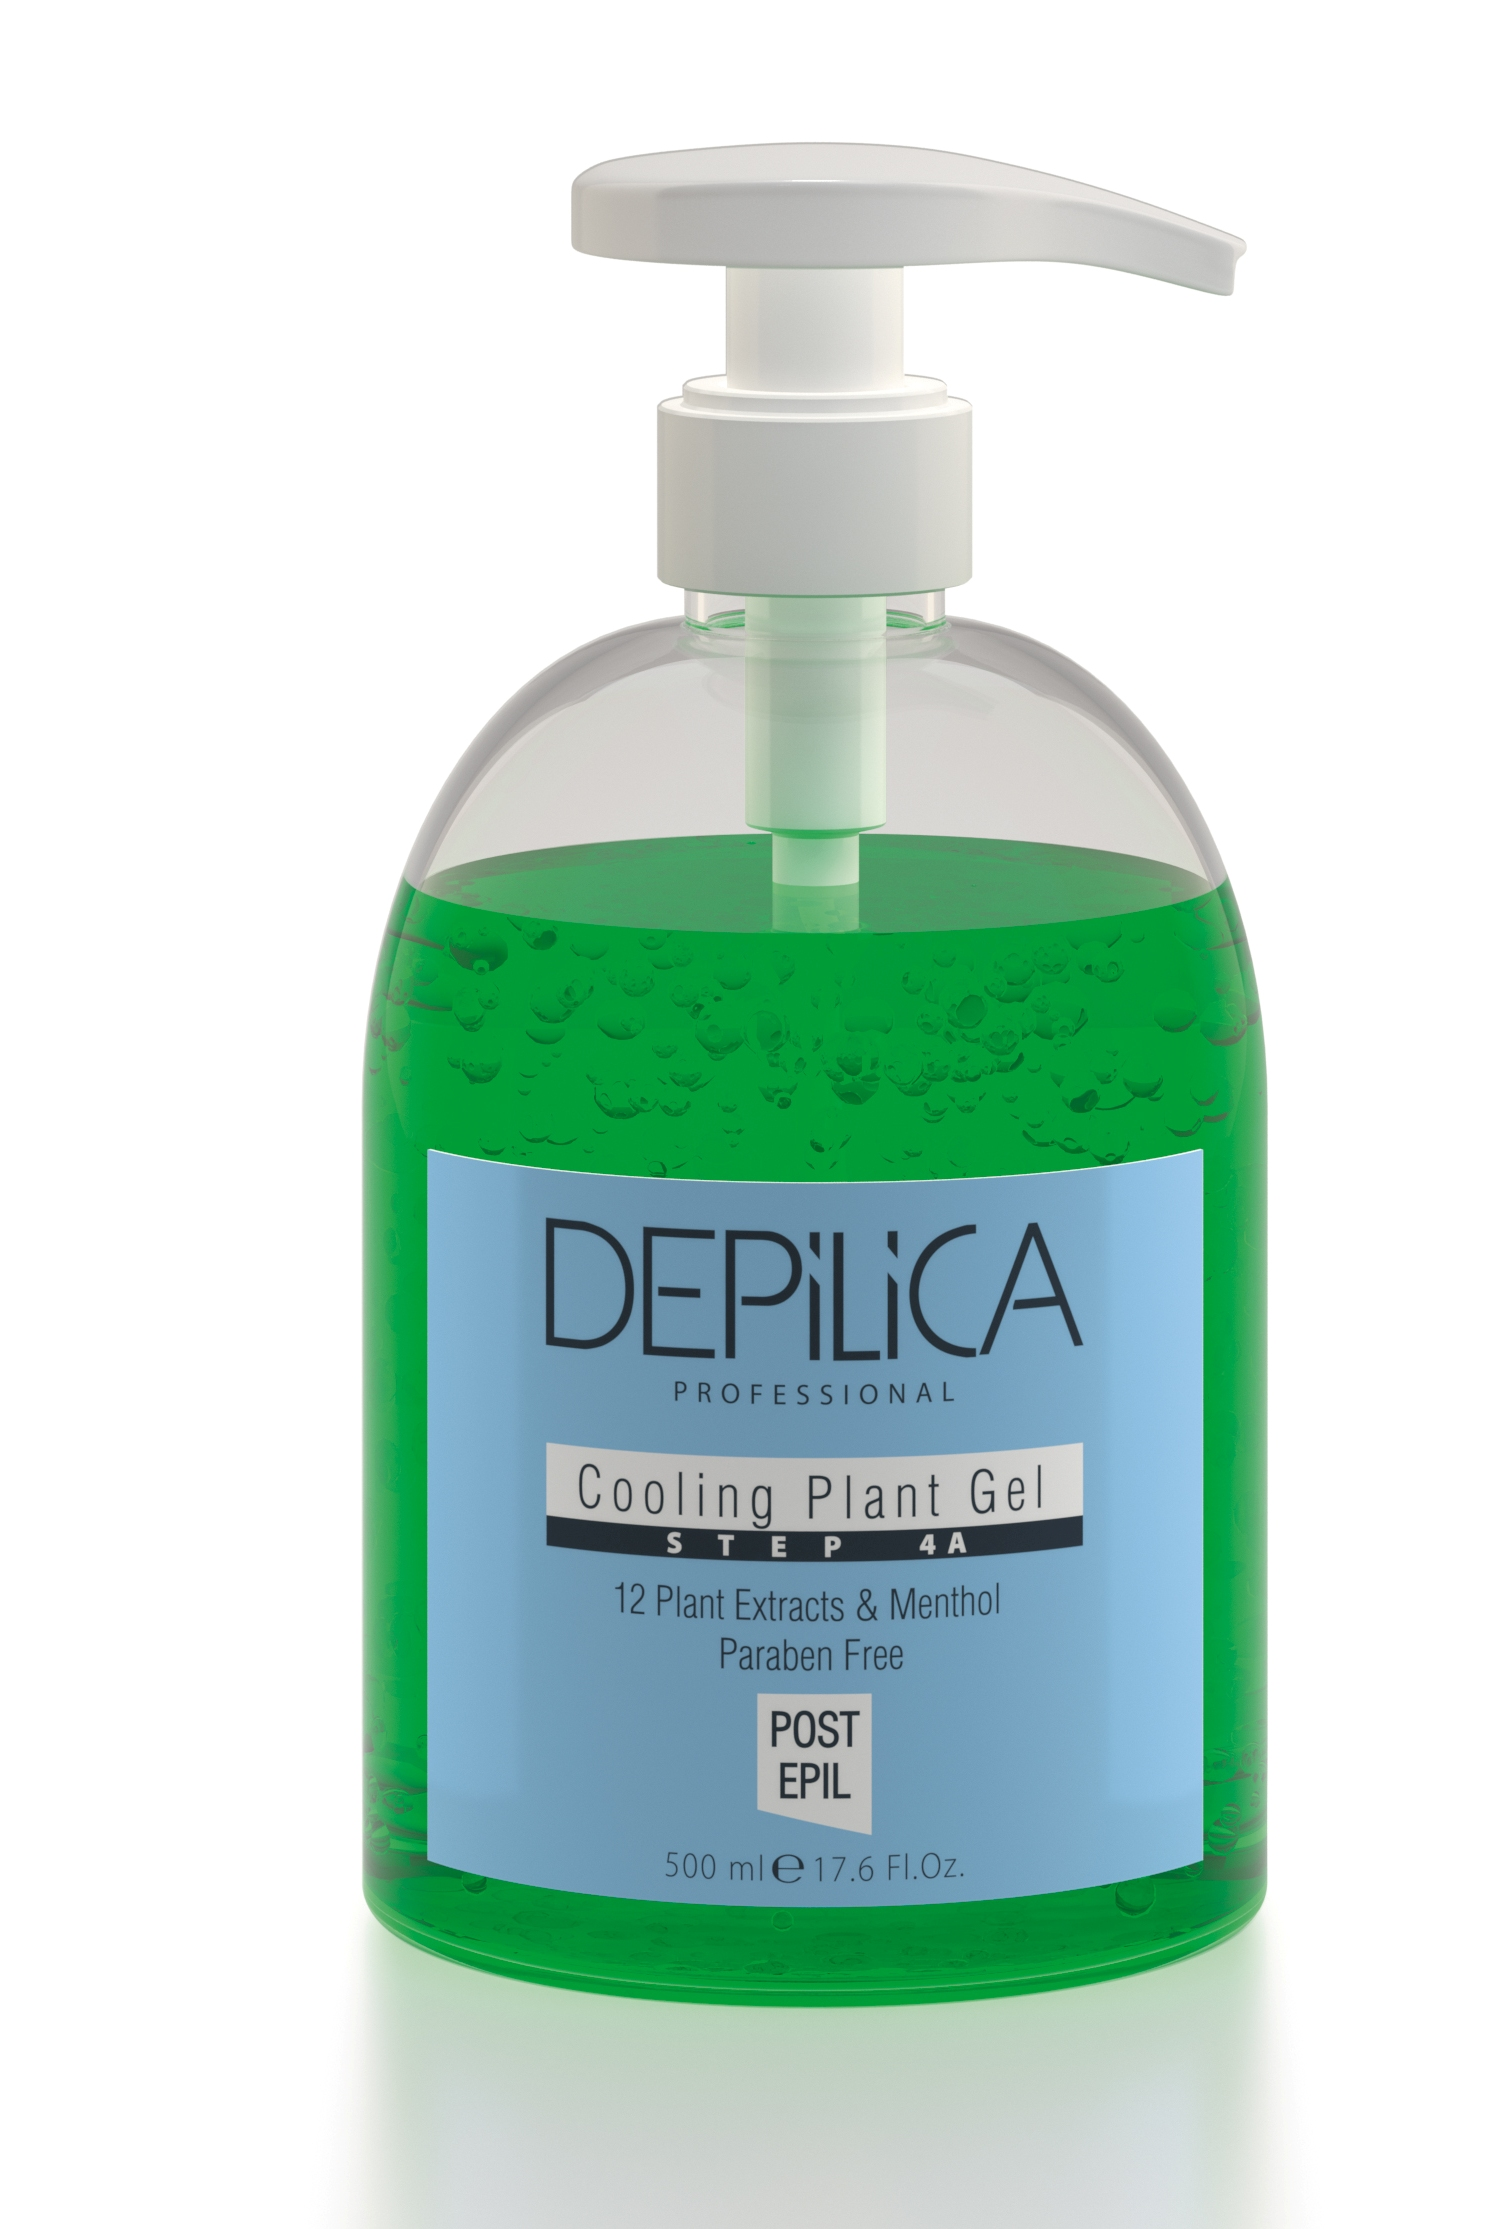 DEPILICA PROFESSIONAL ���� ����������� ������������ ��� 4� / Cooling Plant Gel Step 4A 500��